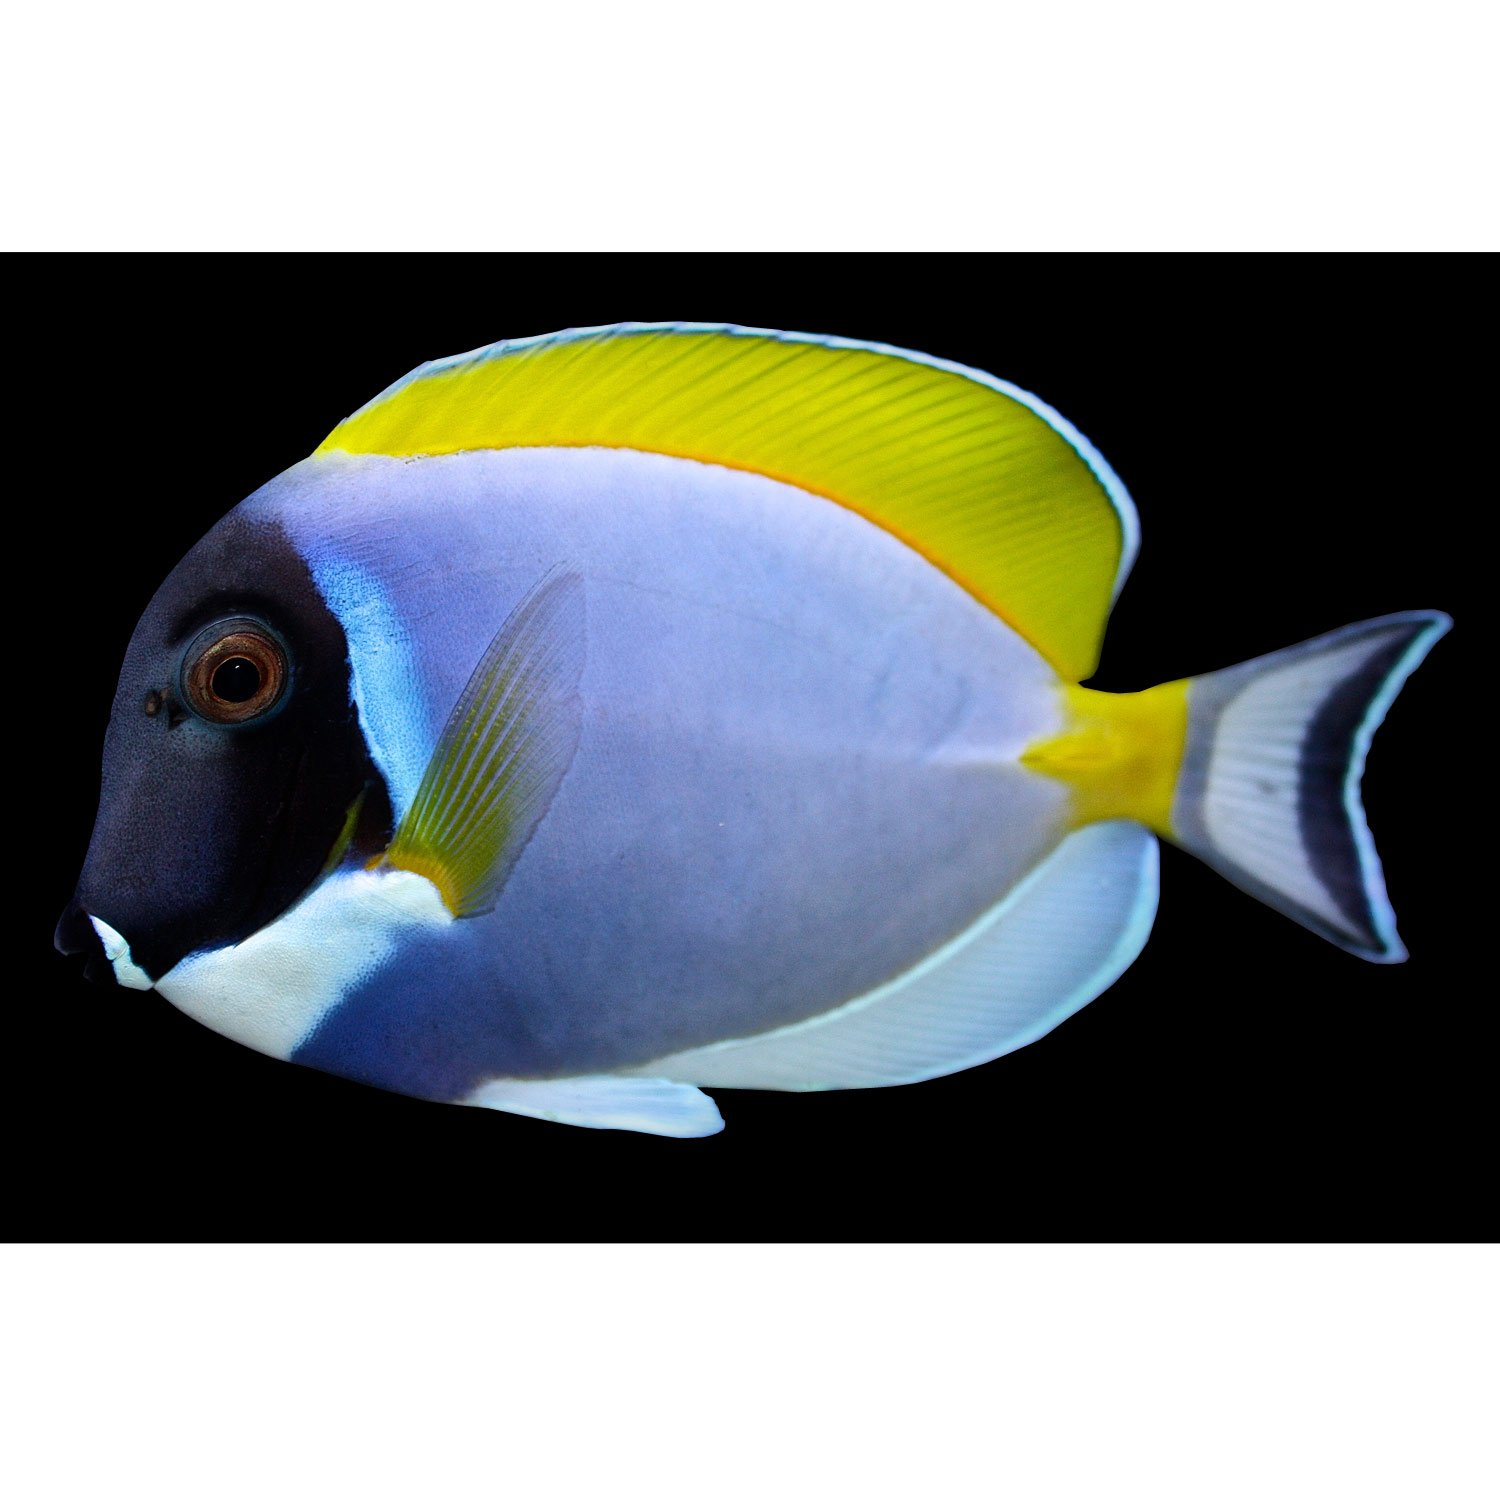 Powder blue tang small petco for Petco live fish